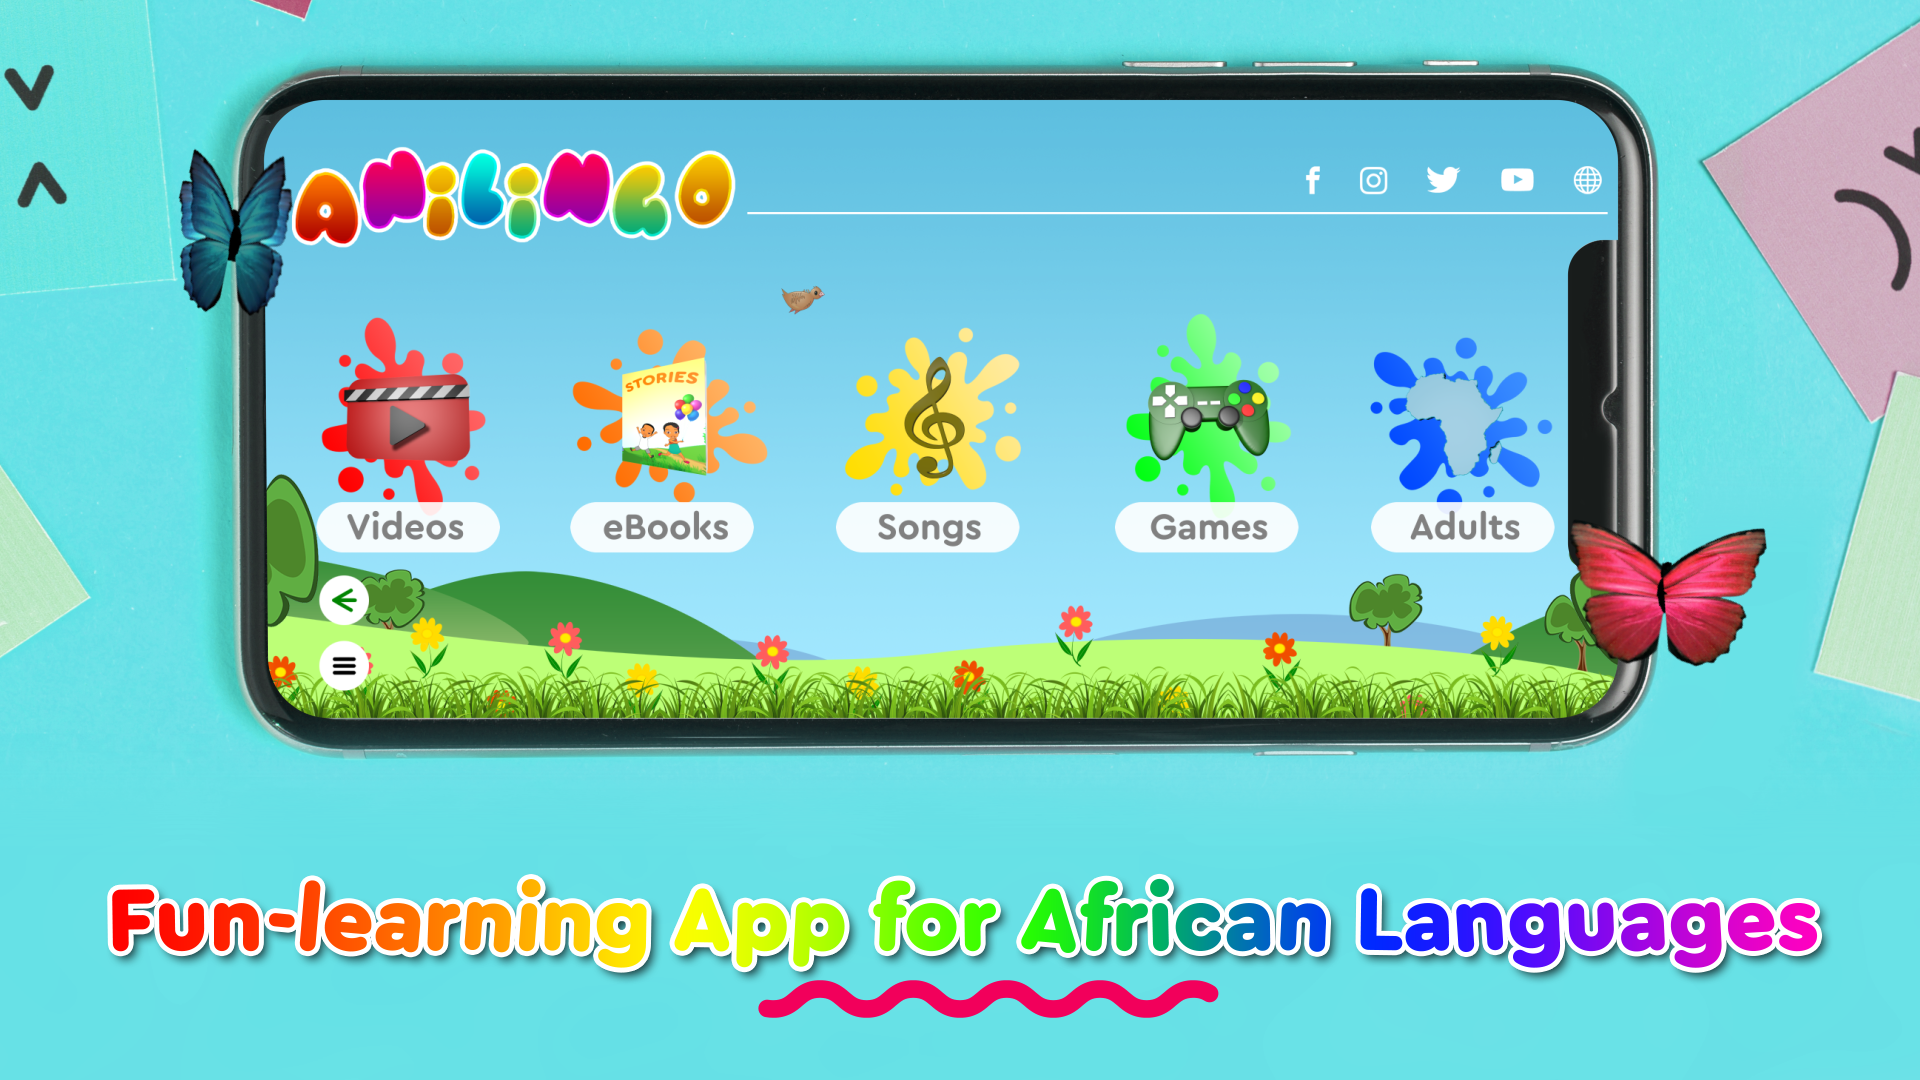 3io Studio Project Anilingo -- Watch, play, and learn African languages with our interactive Anilingo™ mobile app, the best African language learning platform!